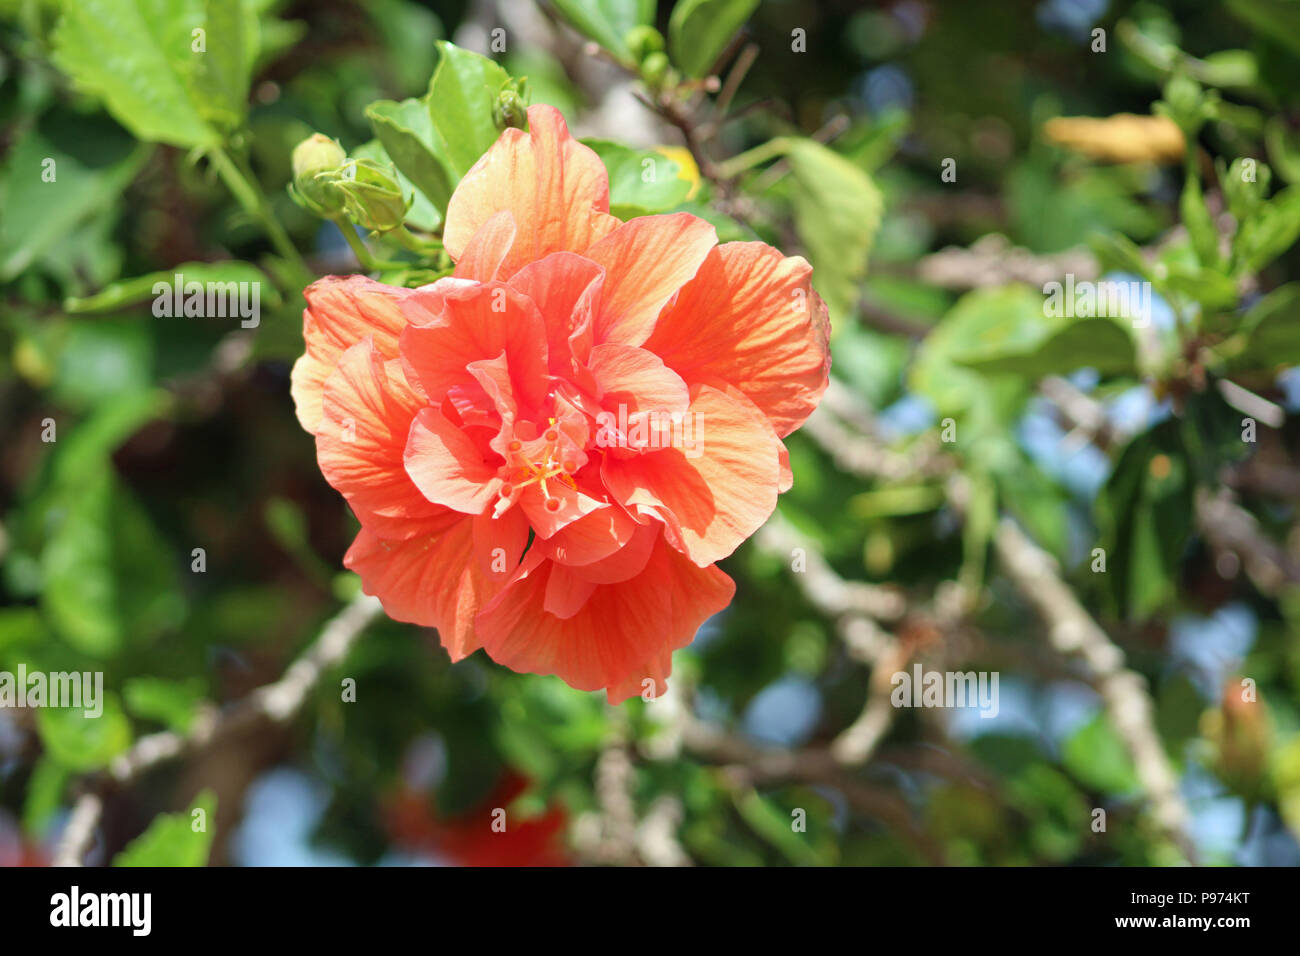 A peach colored hibiscus flower growing in the sun stock photo a peach colored hibiscus flower growing in the sun izmirmasajfo